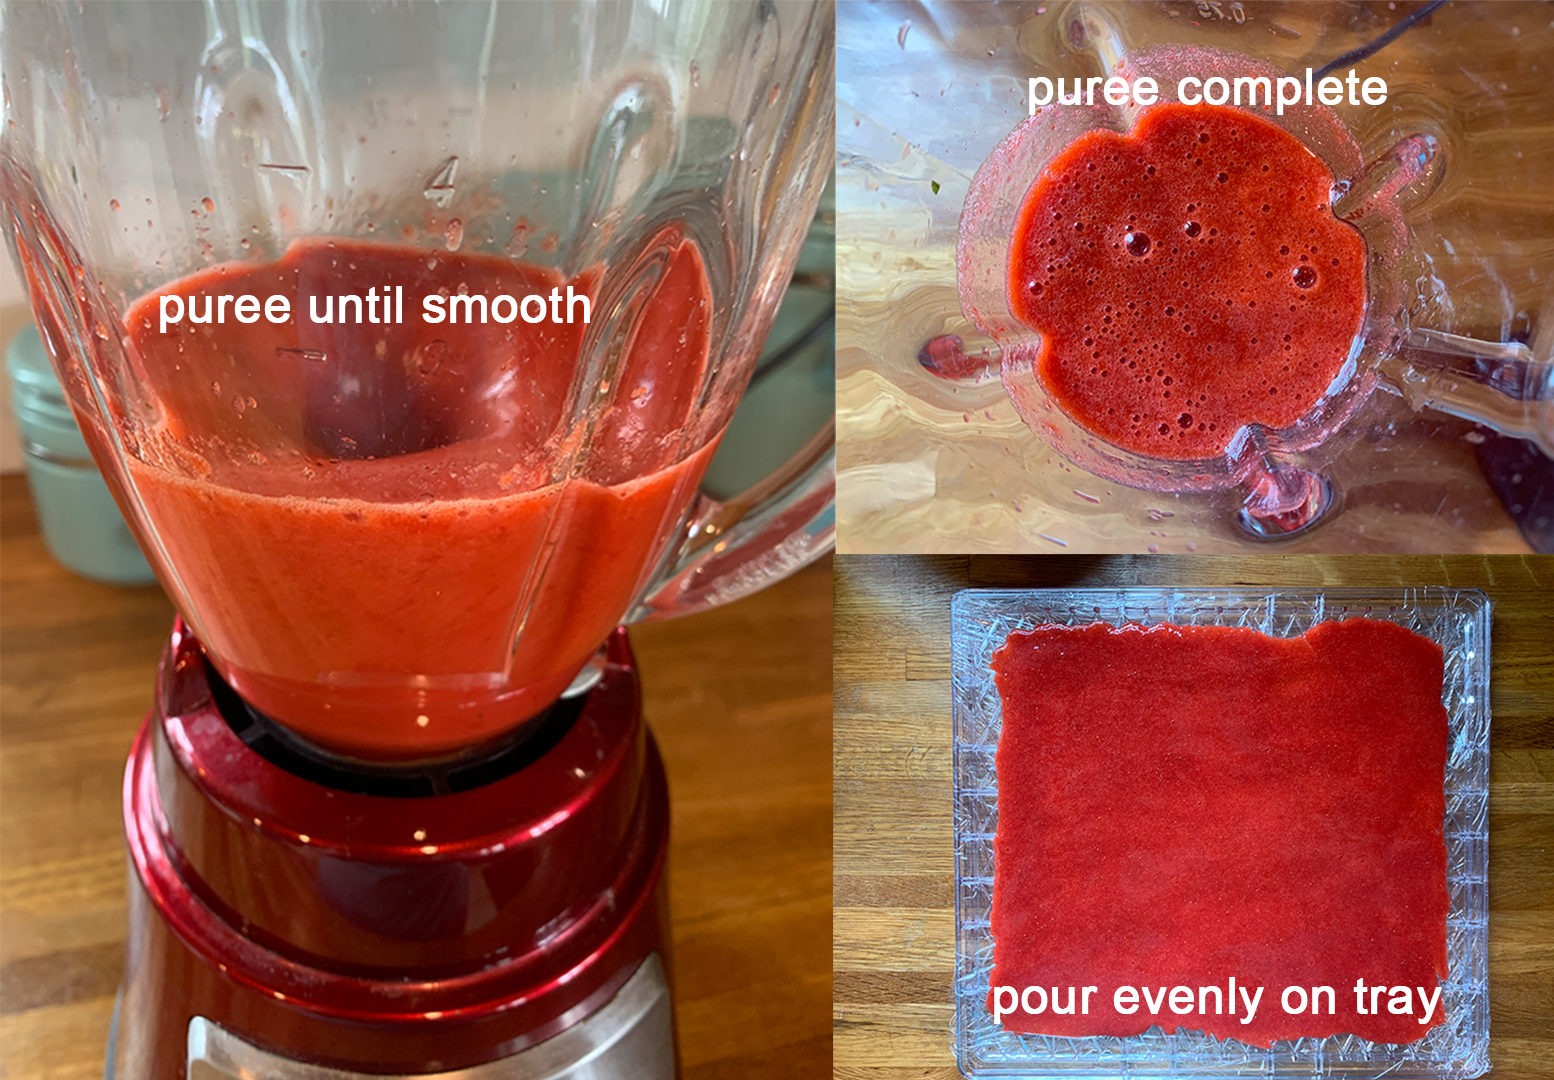 Puree fruit until smooth